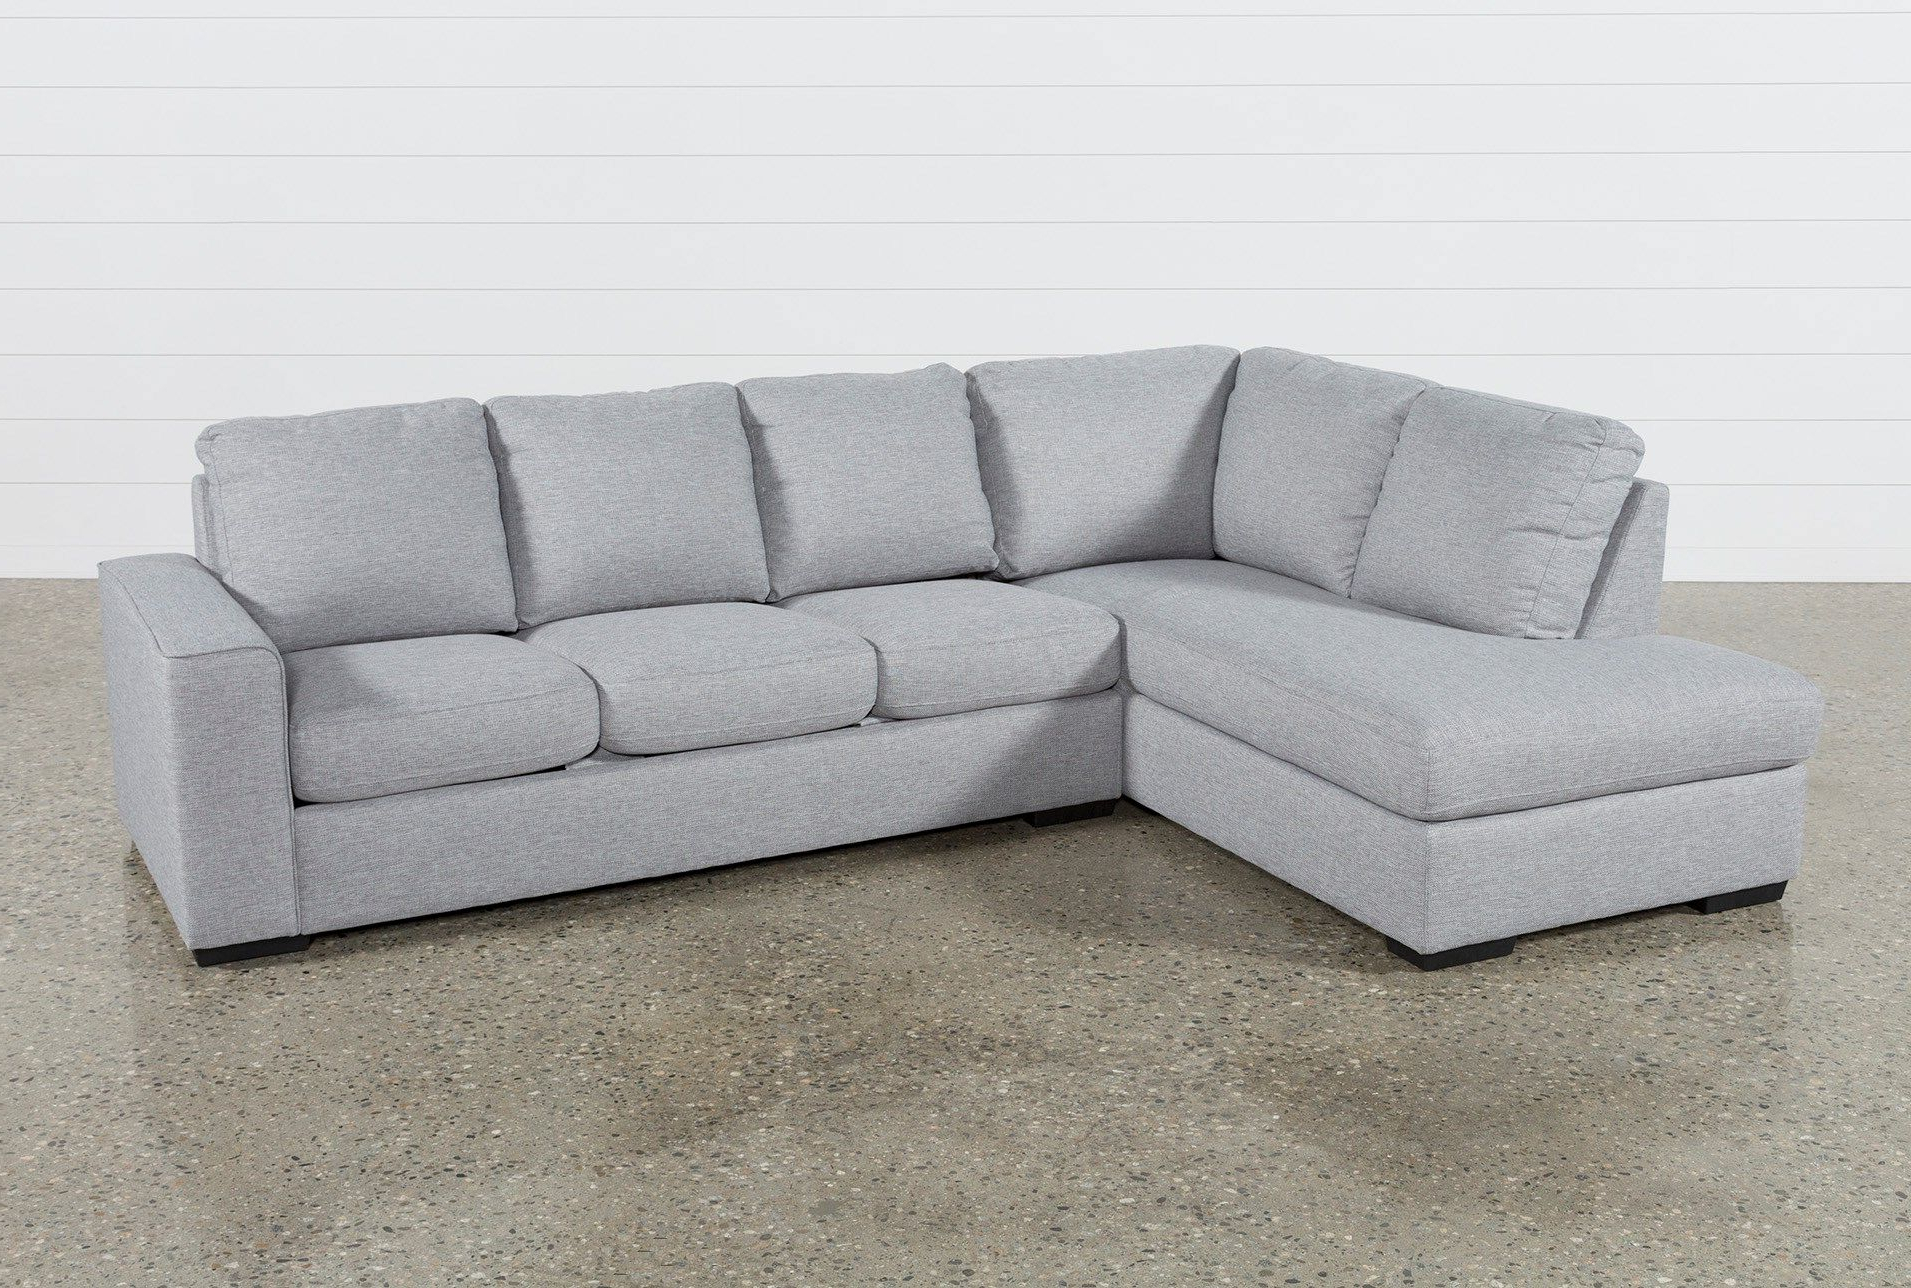 Best And Newest Aquarius Dark Grey 2 Piece Sectionals With Laf Chaise Pertaining To Lucy Grey 2 Piece Sectional W/laf Chaise In  (View 6 of 20)